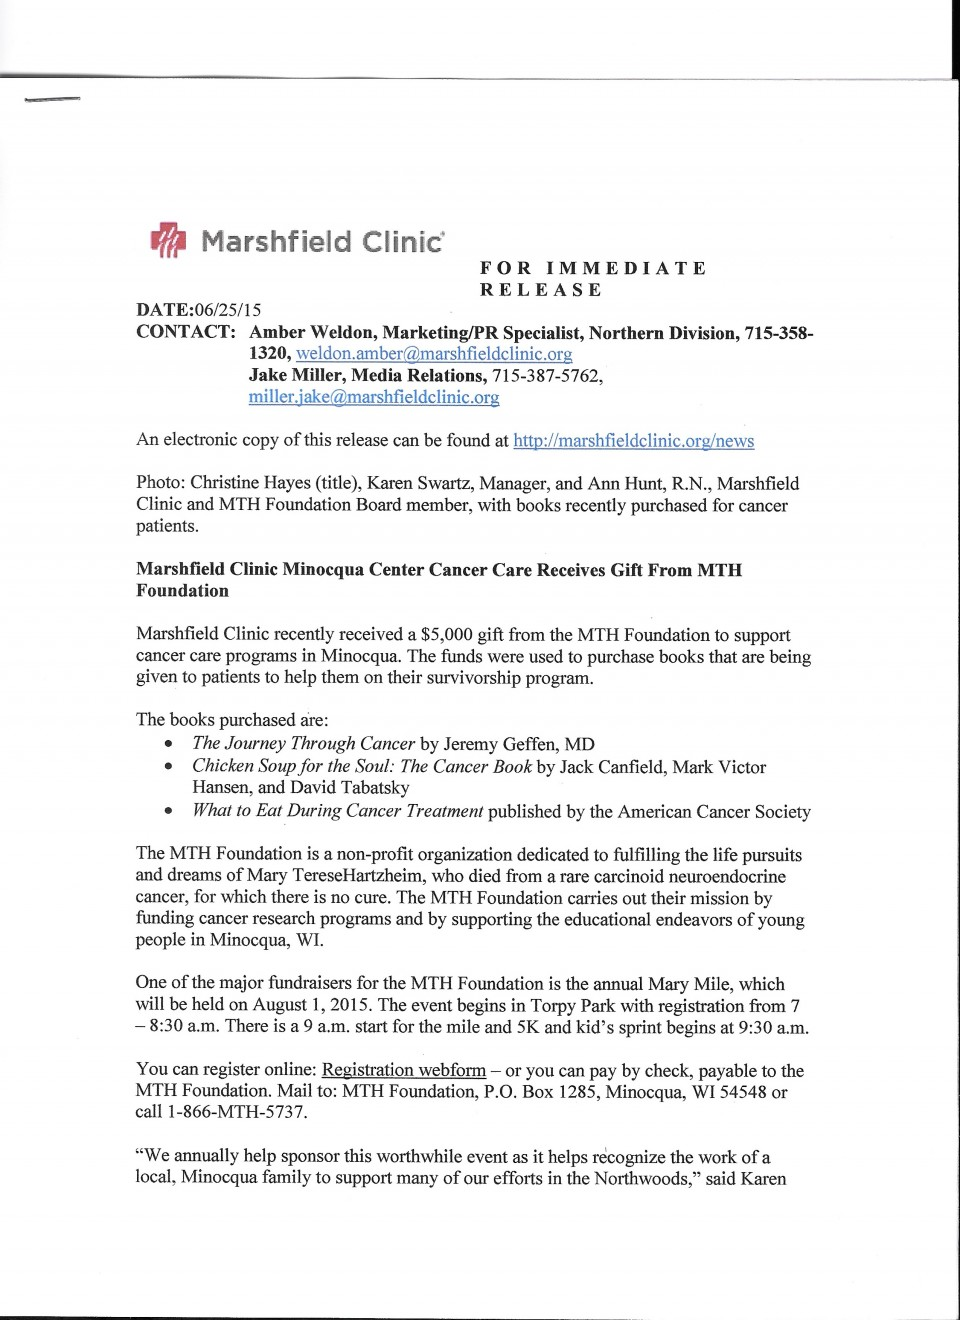 023 Research Paper Mth Marshfield Clinic Press Release Cancer Unique Outline Skin Breast Lung 960